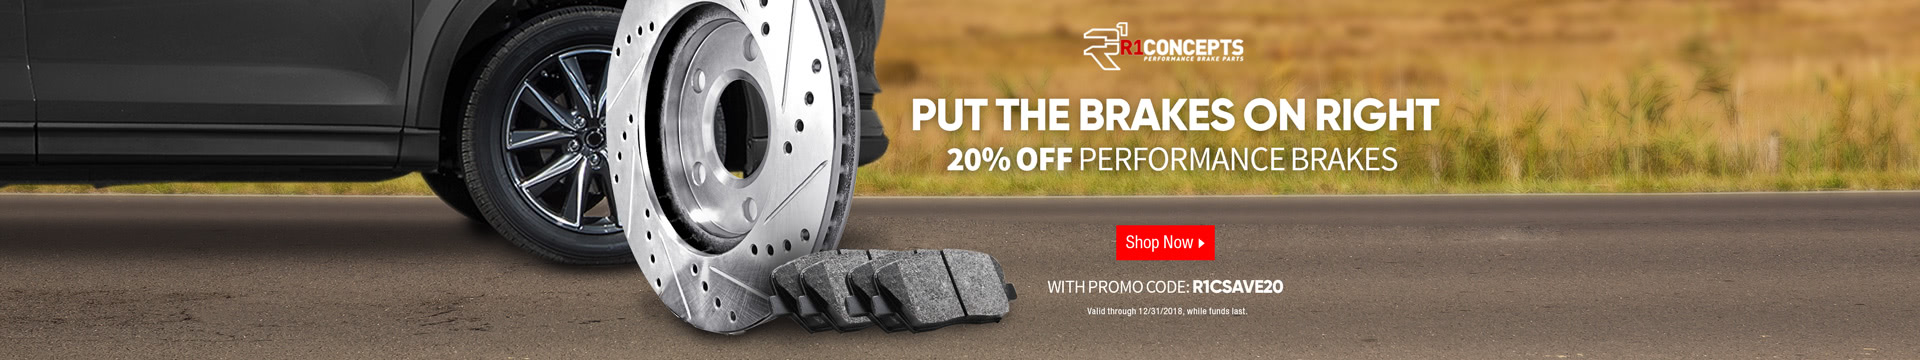 20% off performance brakes